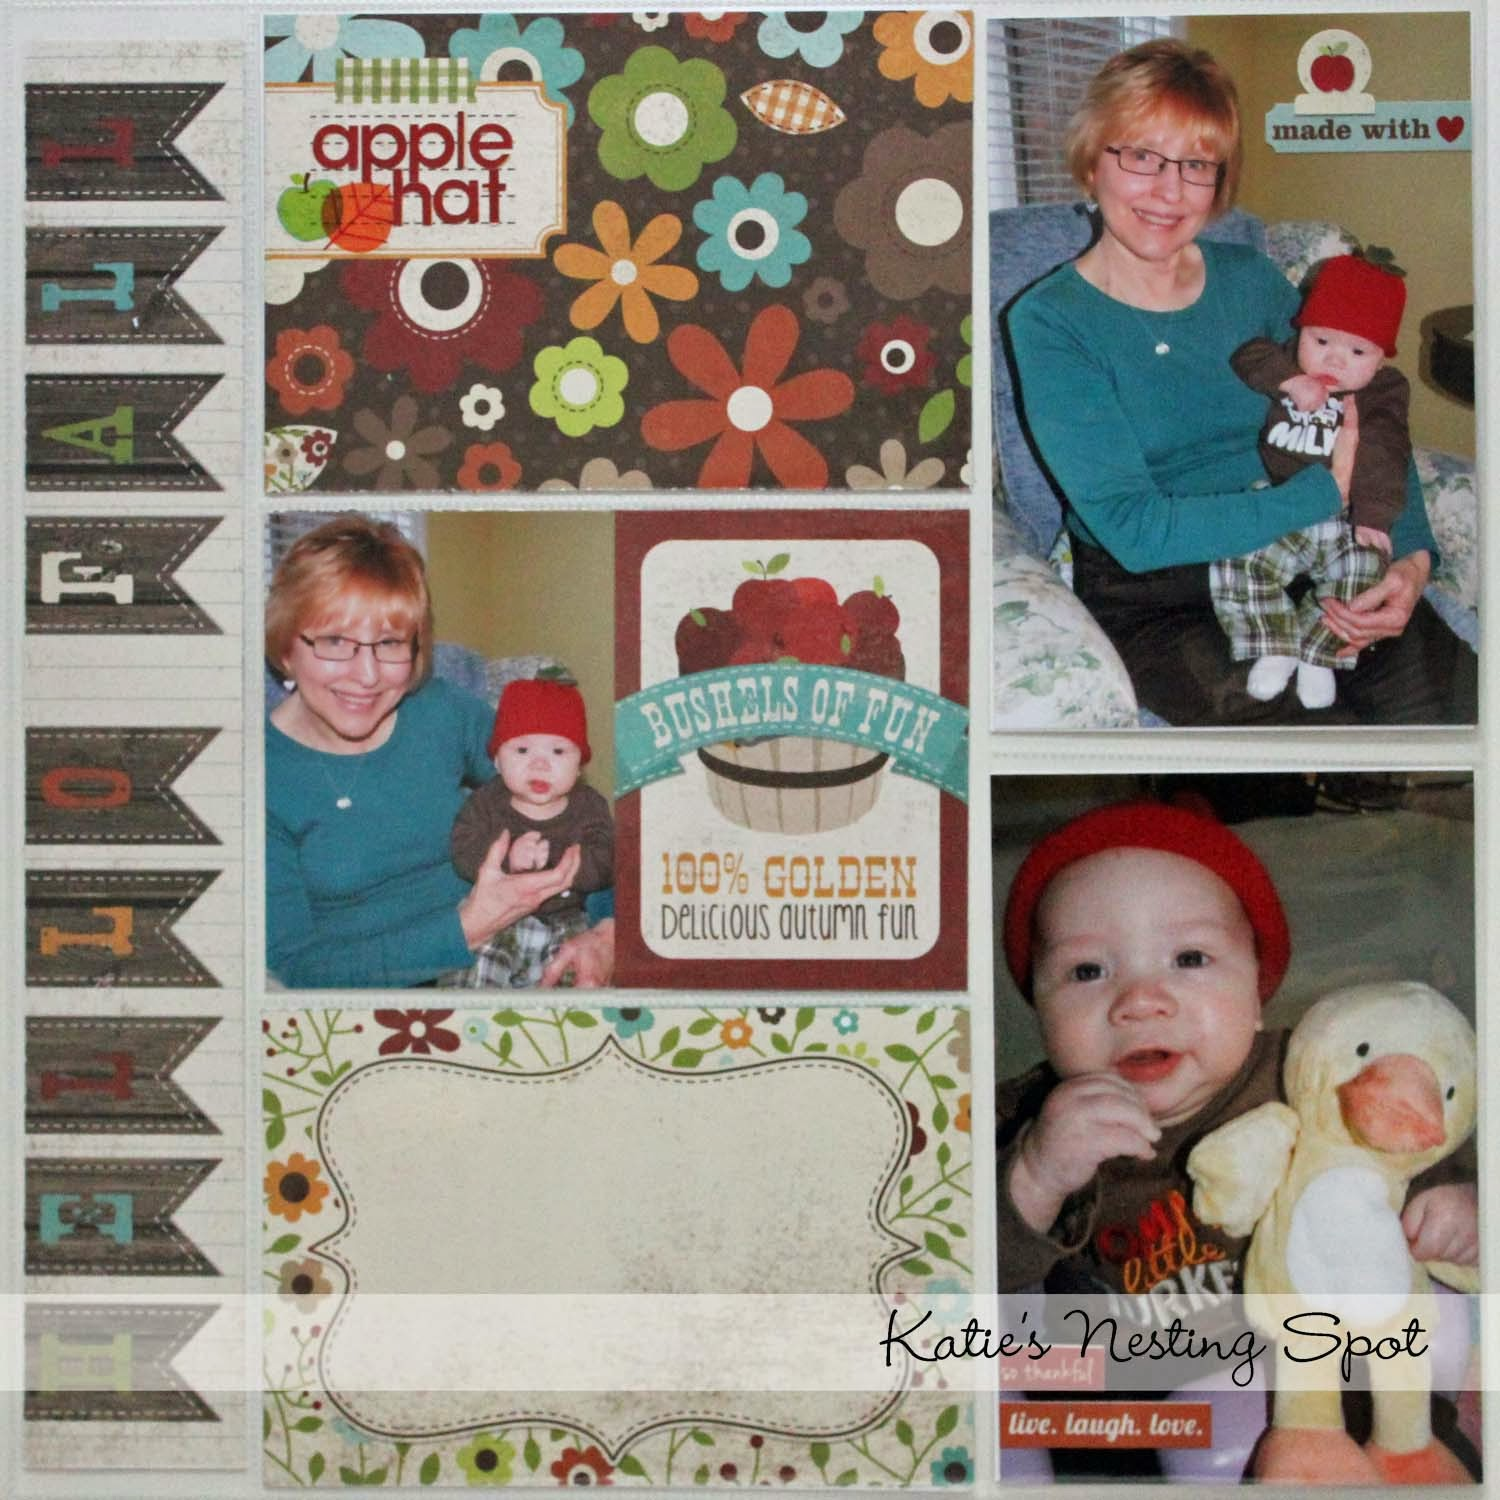 How to scrapbook faster - This First Page Is About The Apple Hat My Mom Knitted And That Both Kids Have Worn It S So Cute Journaling Has Been Added To The Empty Card